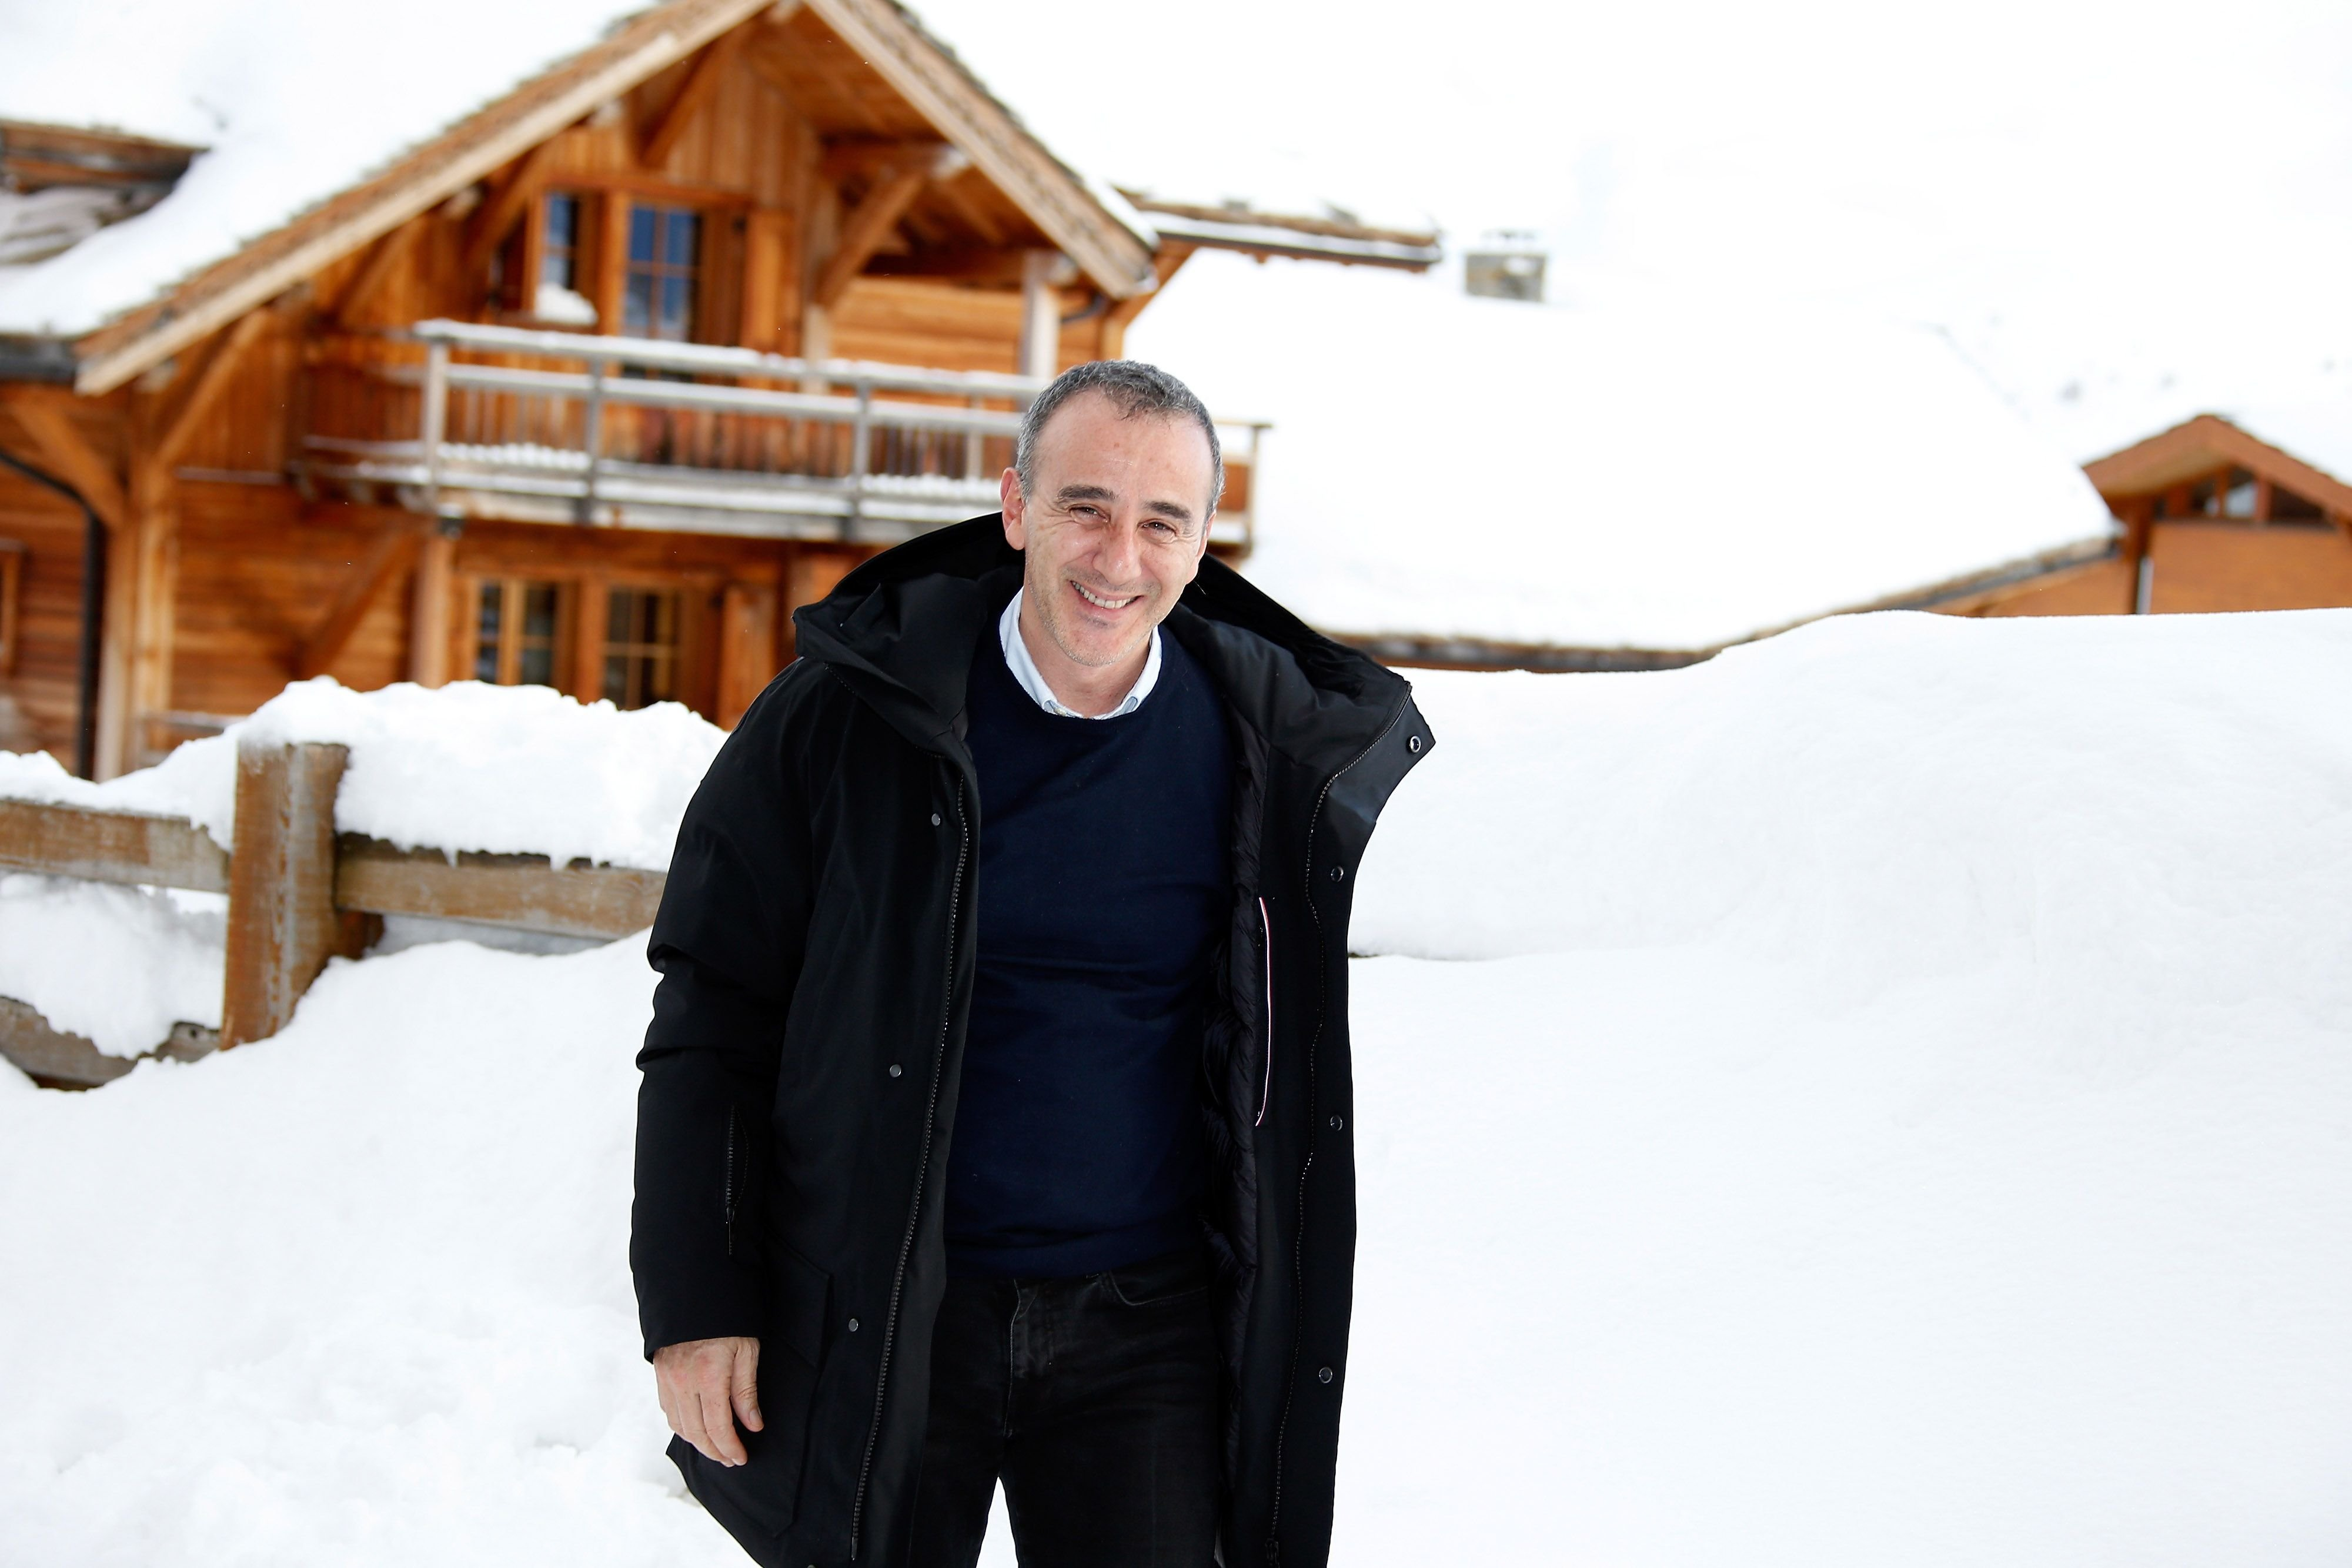 Elie Semoun participe au 21ème Festival du Film Comique de l'Alpe d'Huez à l'Alpe d'Huez, France. | Photo : Getty Images